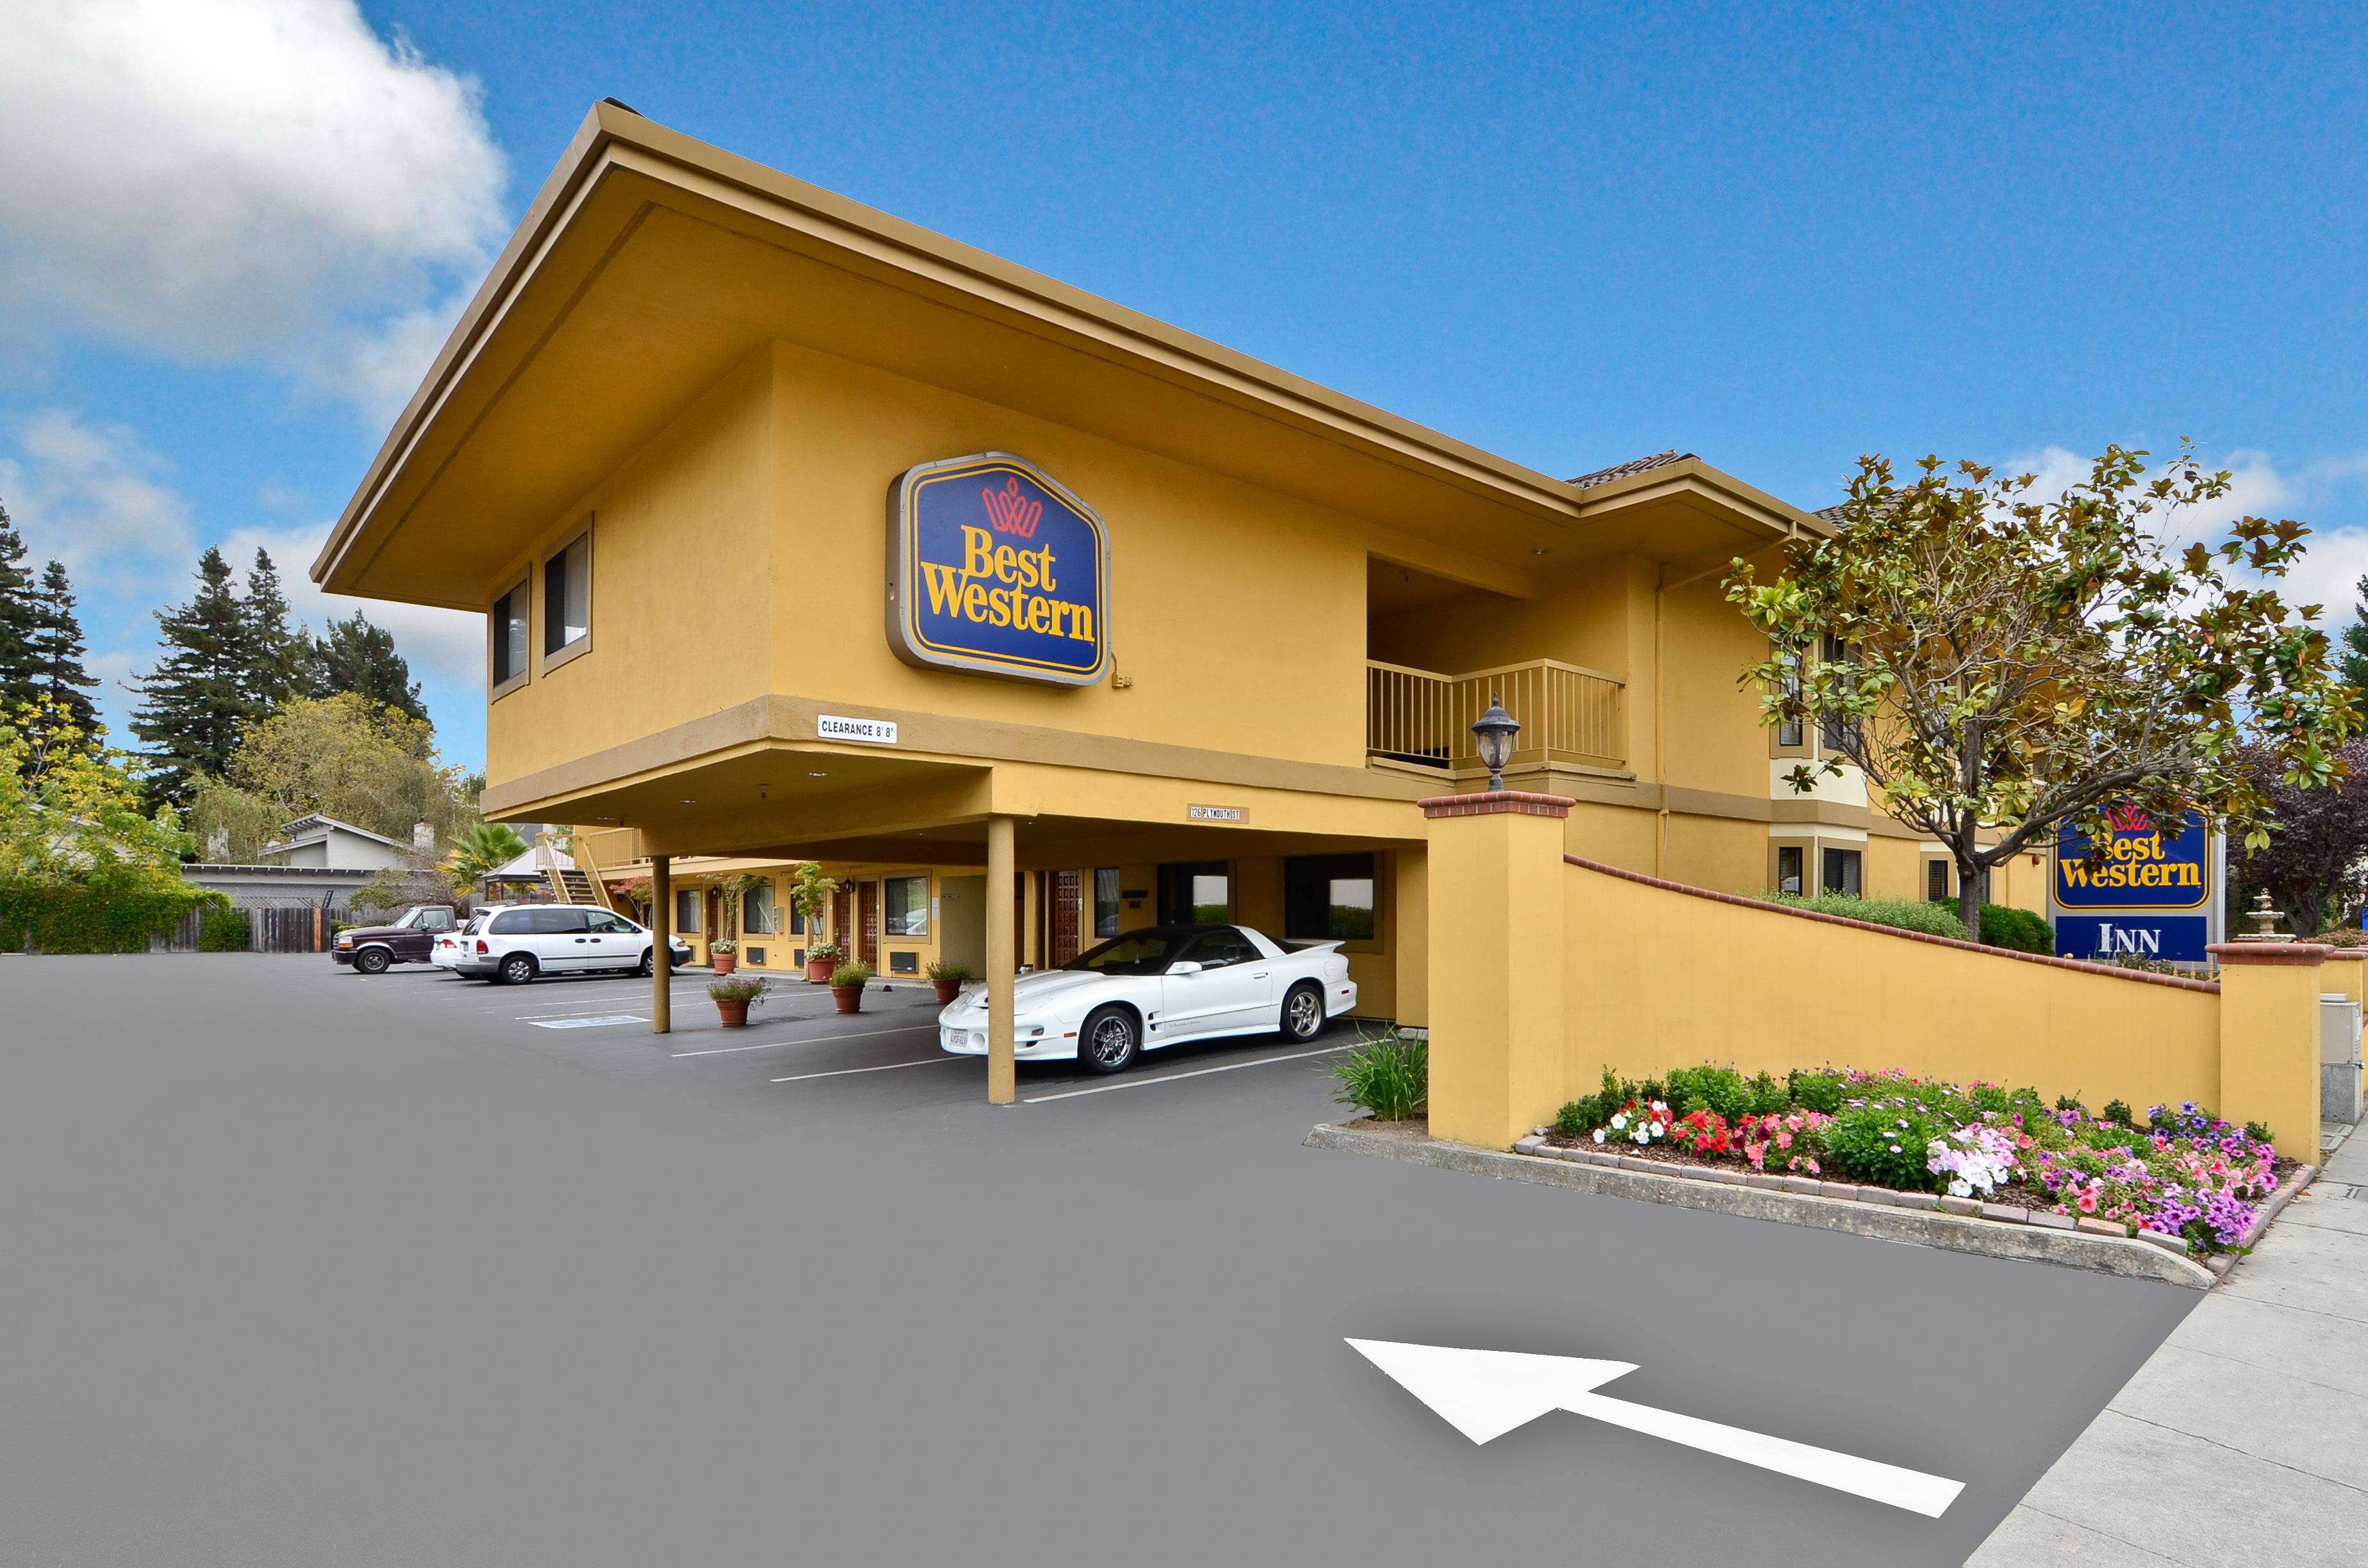 best western inn santa cruz ca business profile